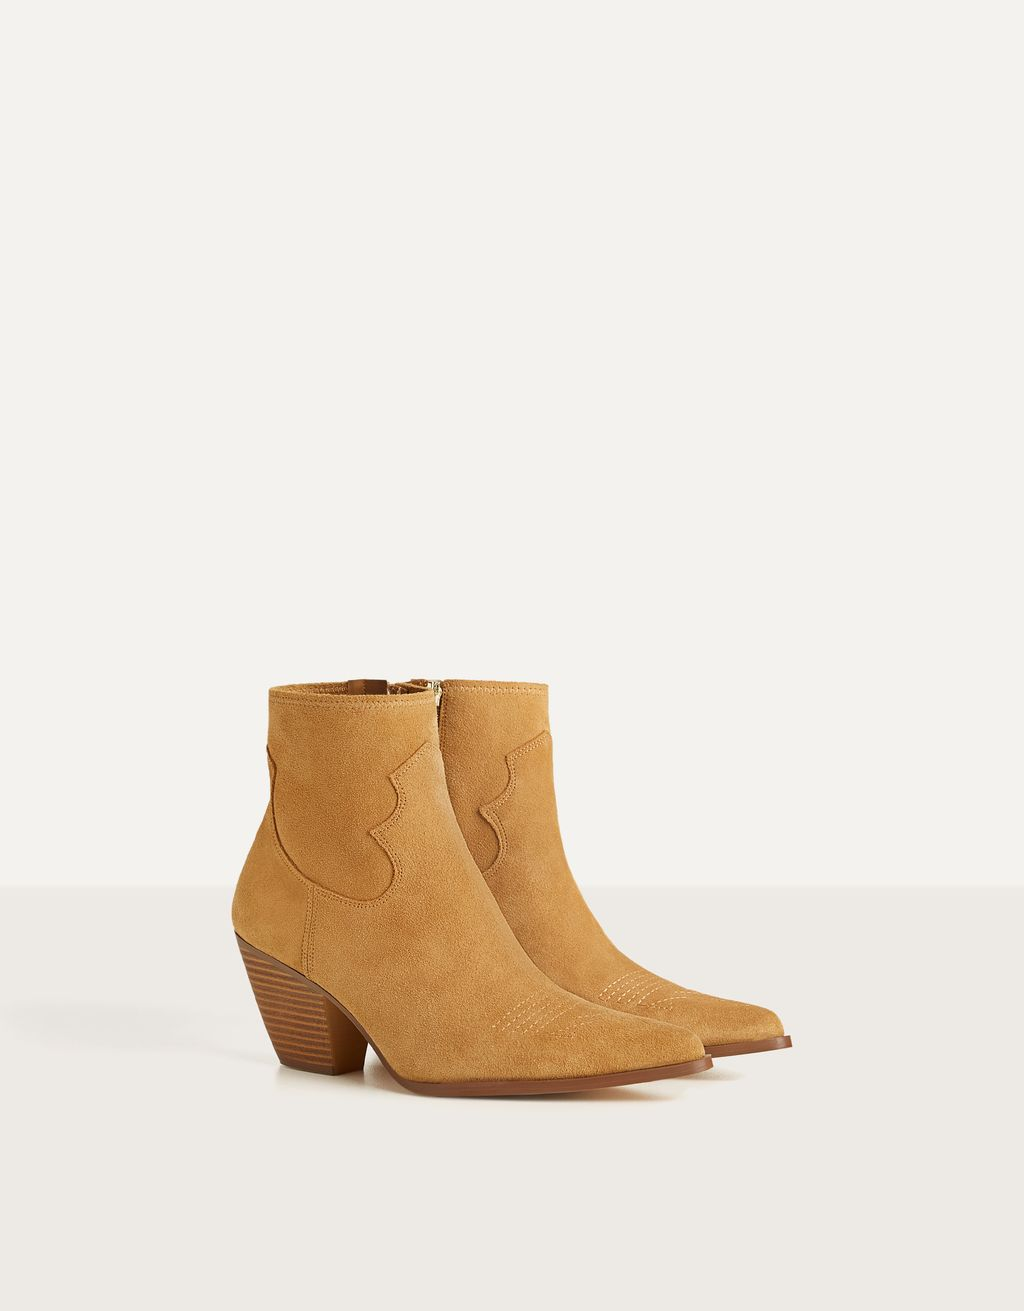 Heeled cowboy LEATHER ankle boots